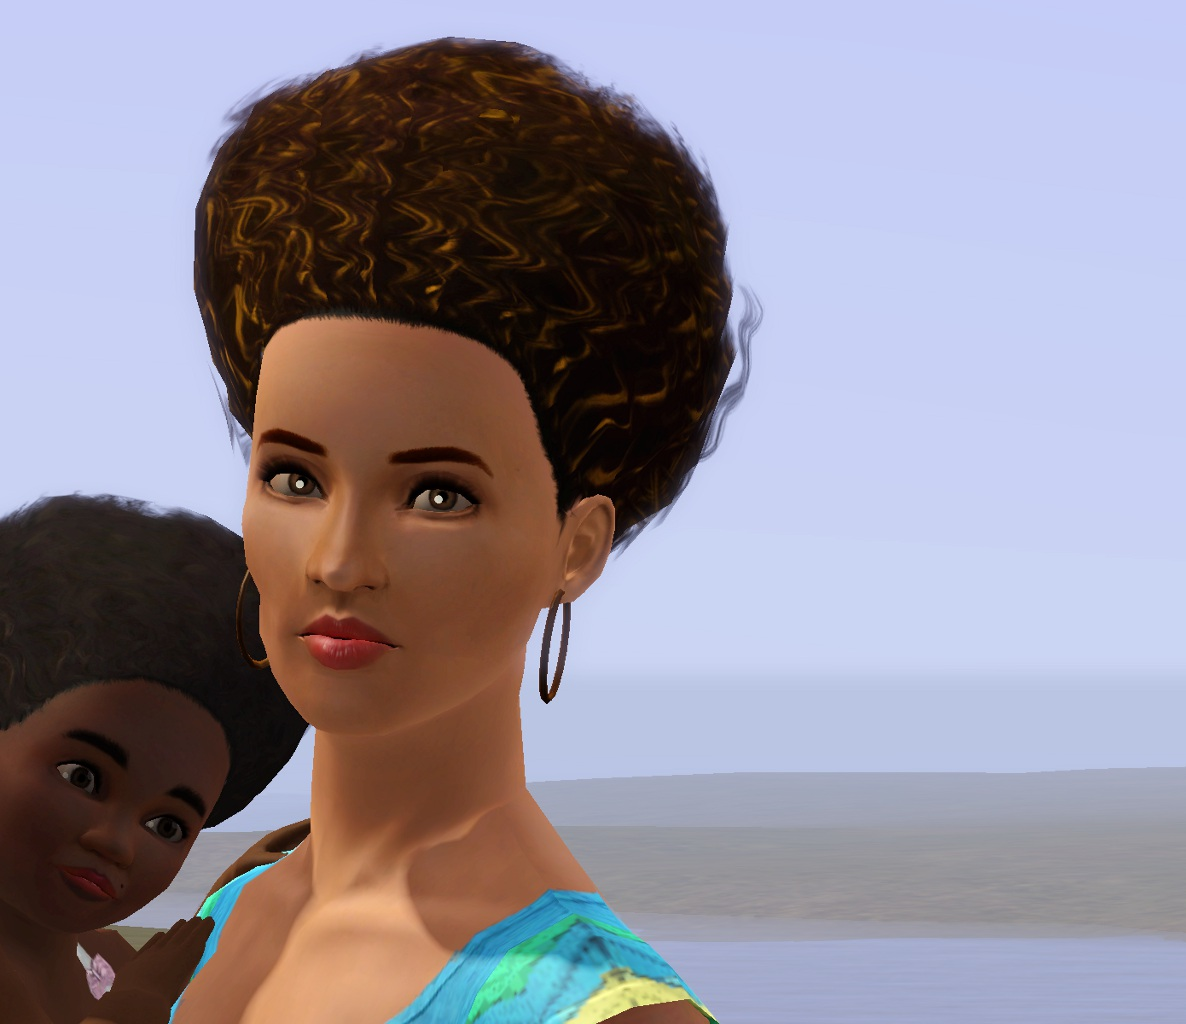 Mod The Sims Sims 3 Shop Halloween Hair As Afro Now With Am